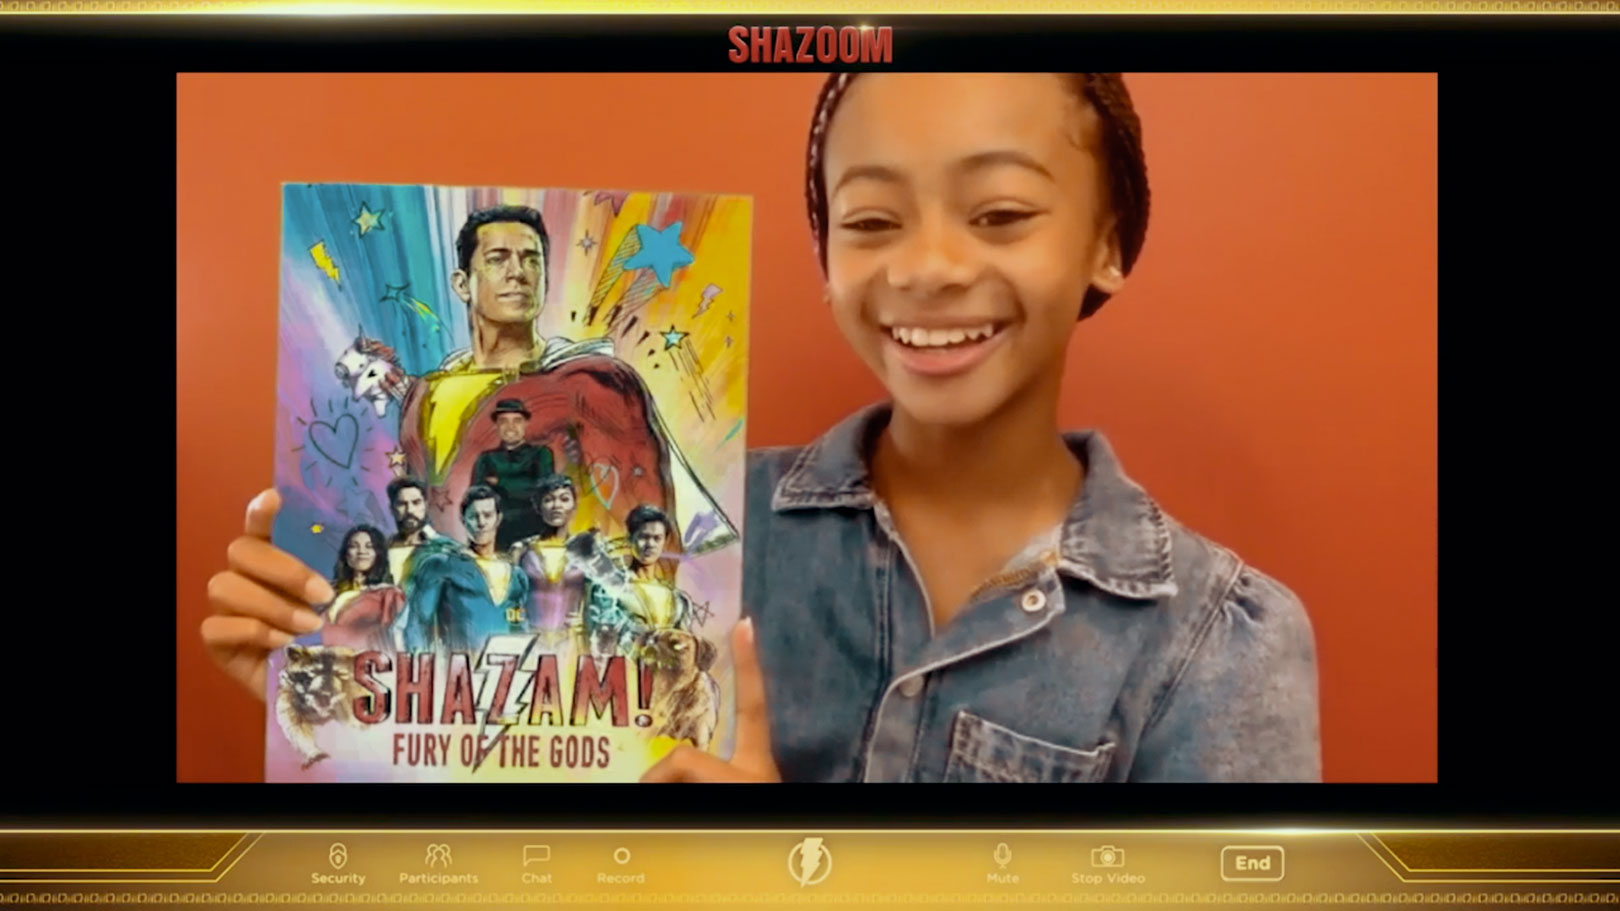 SHAZAM!: Fury of the Gods